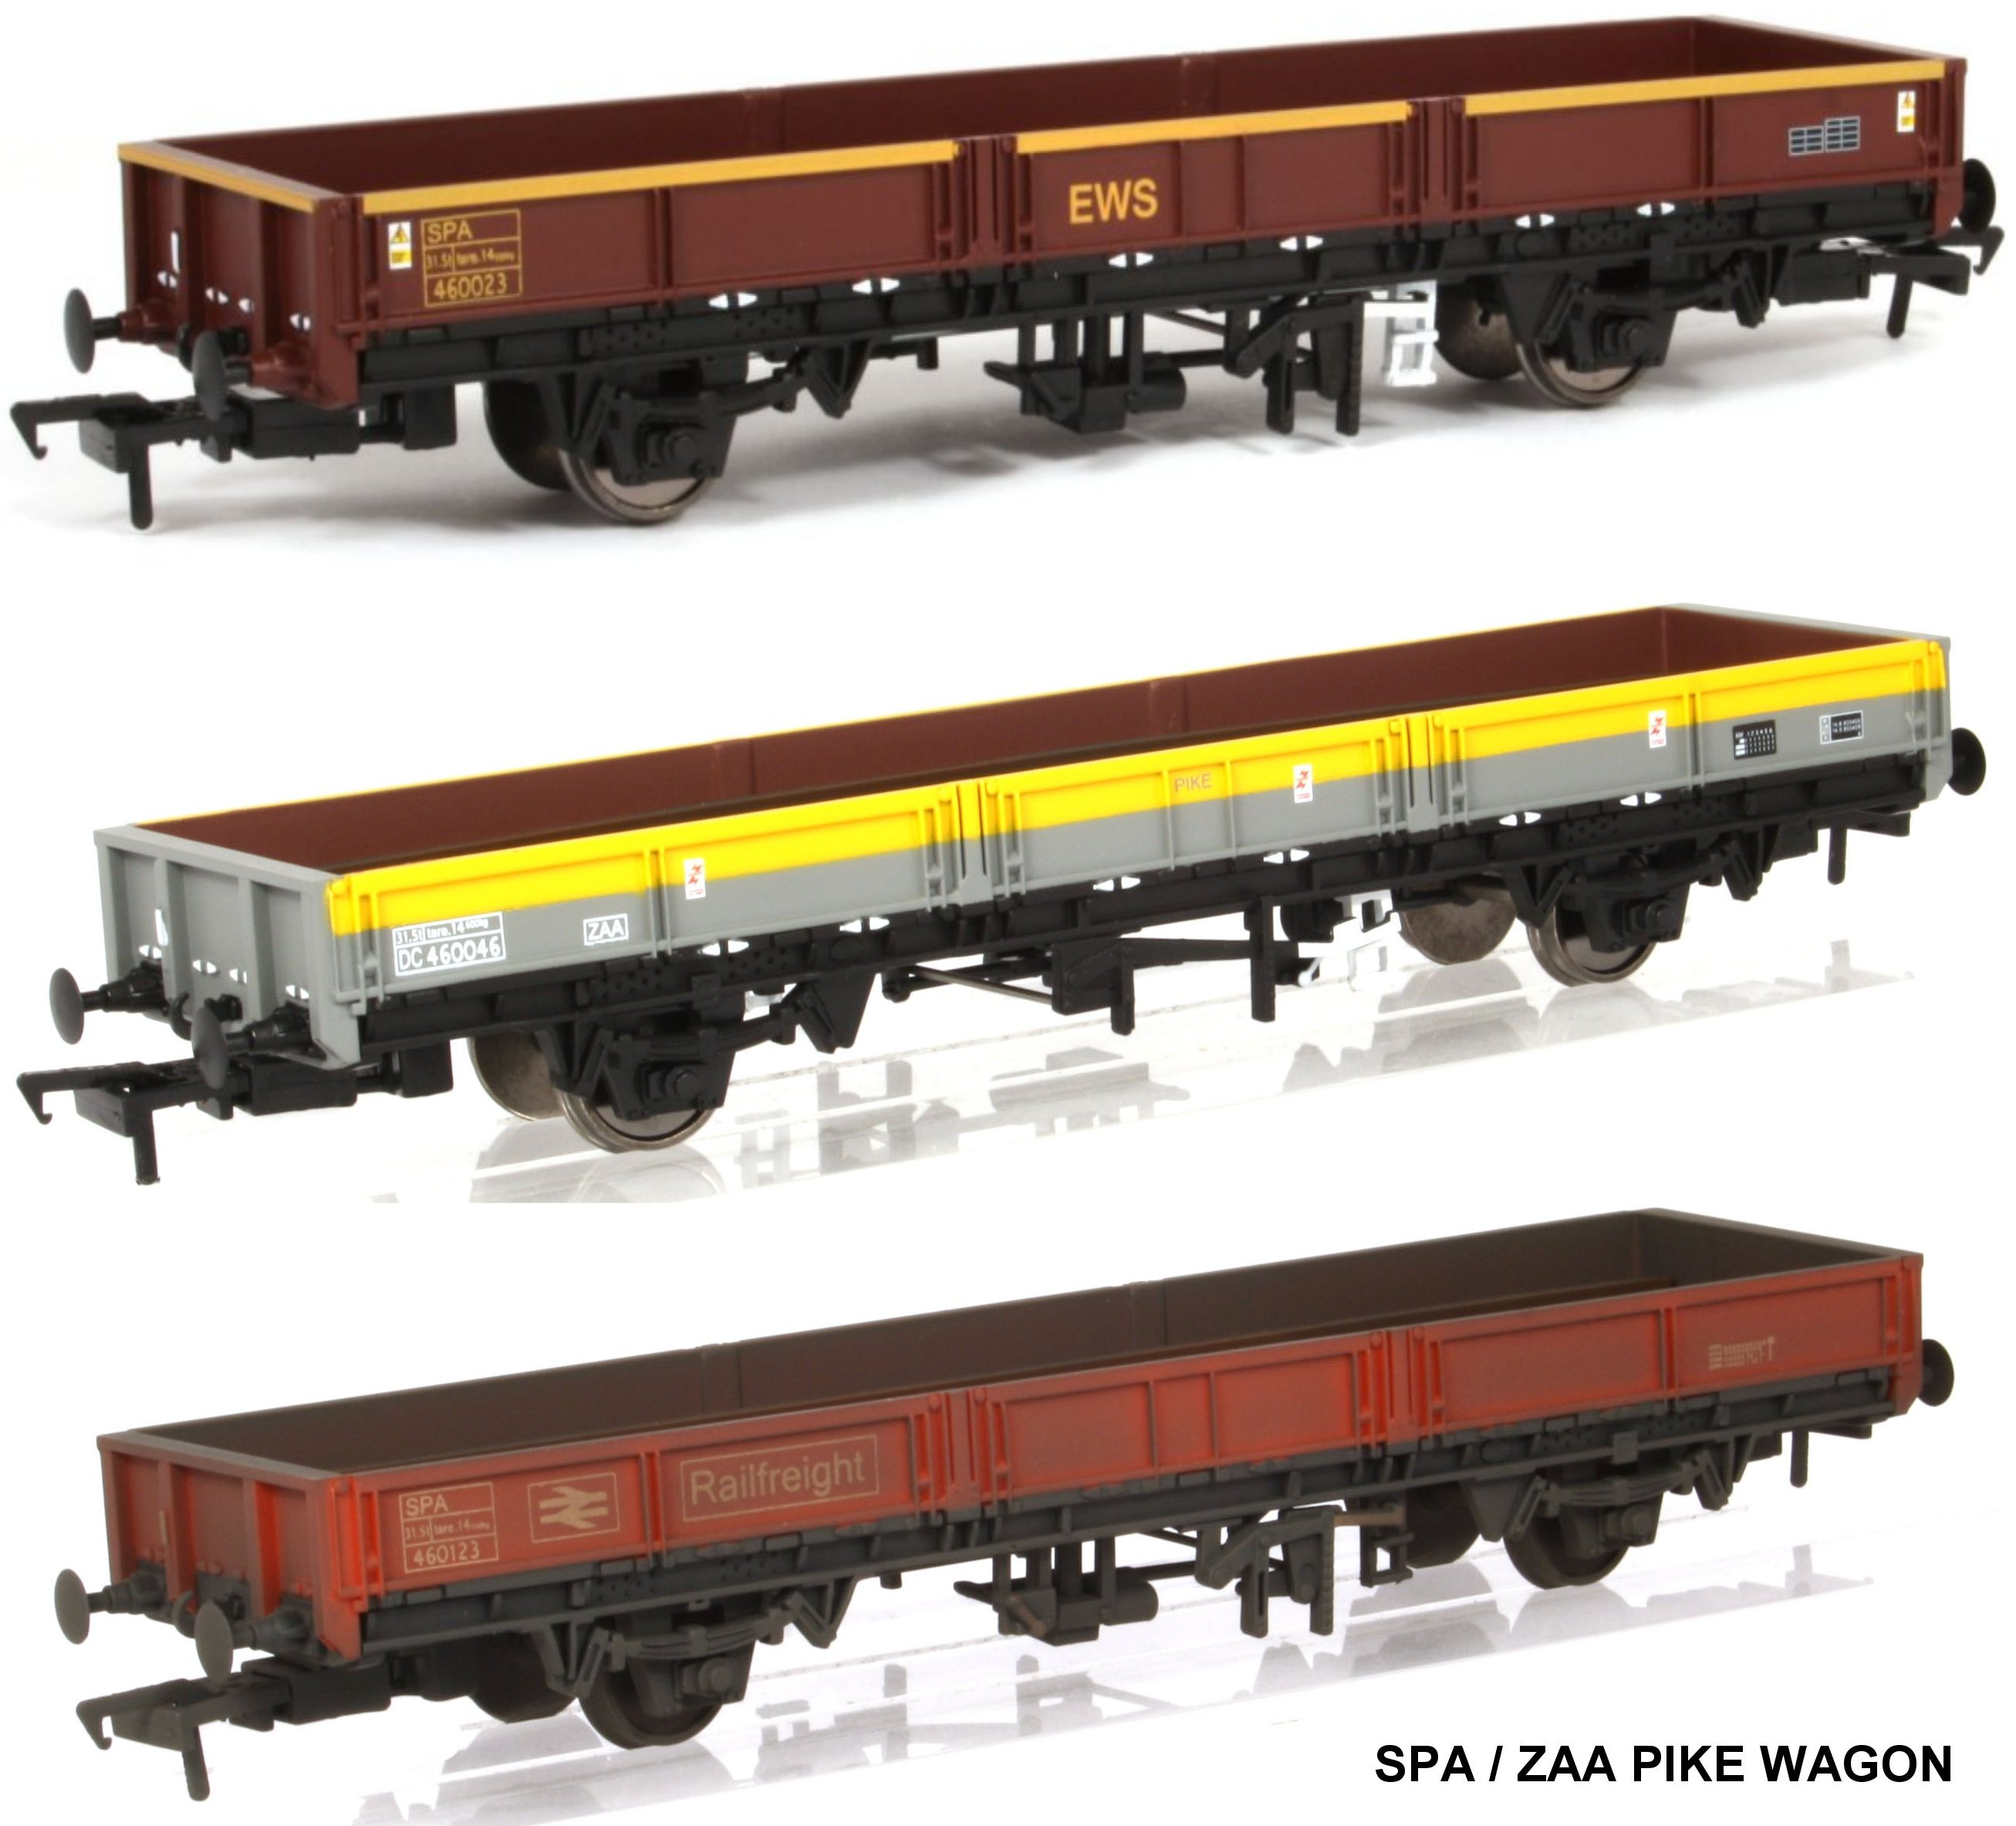 SPA ZAA Pike Wagon Image